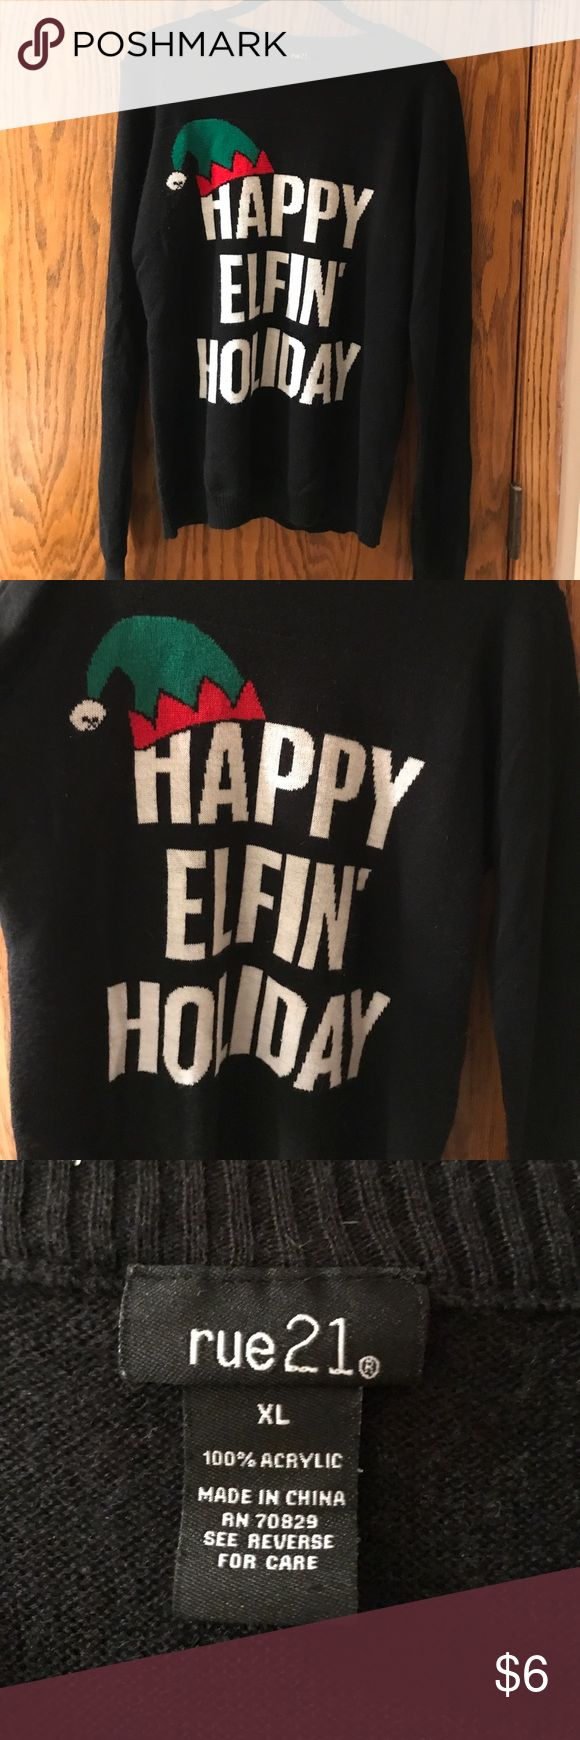 Ugly xmas sweater Crew neck funny ugly xmas sweater Rue21 Sweaters Crew & Scoop Necks